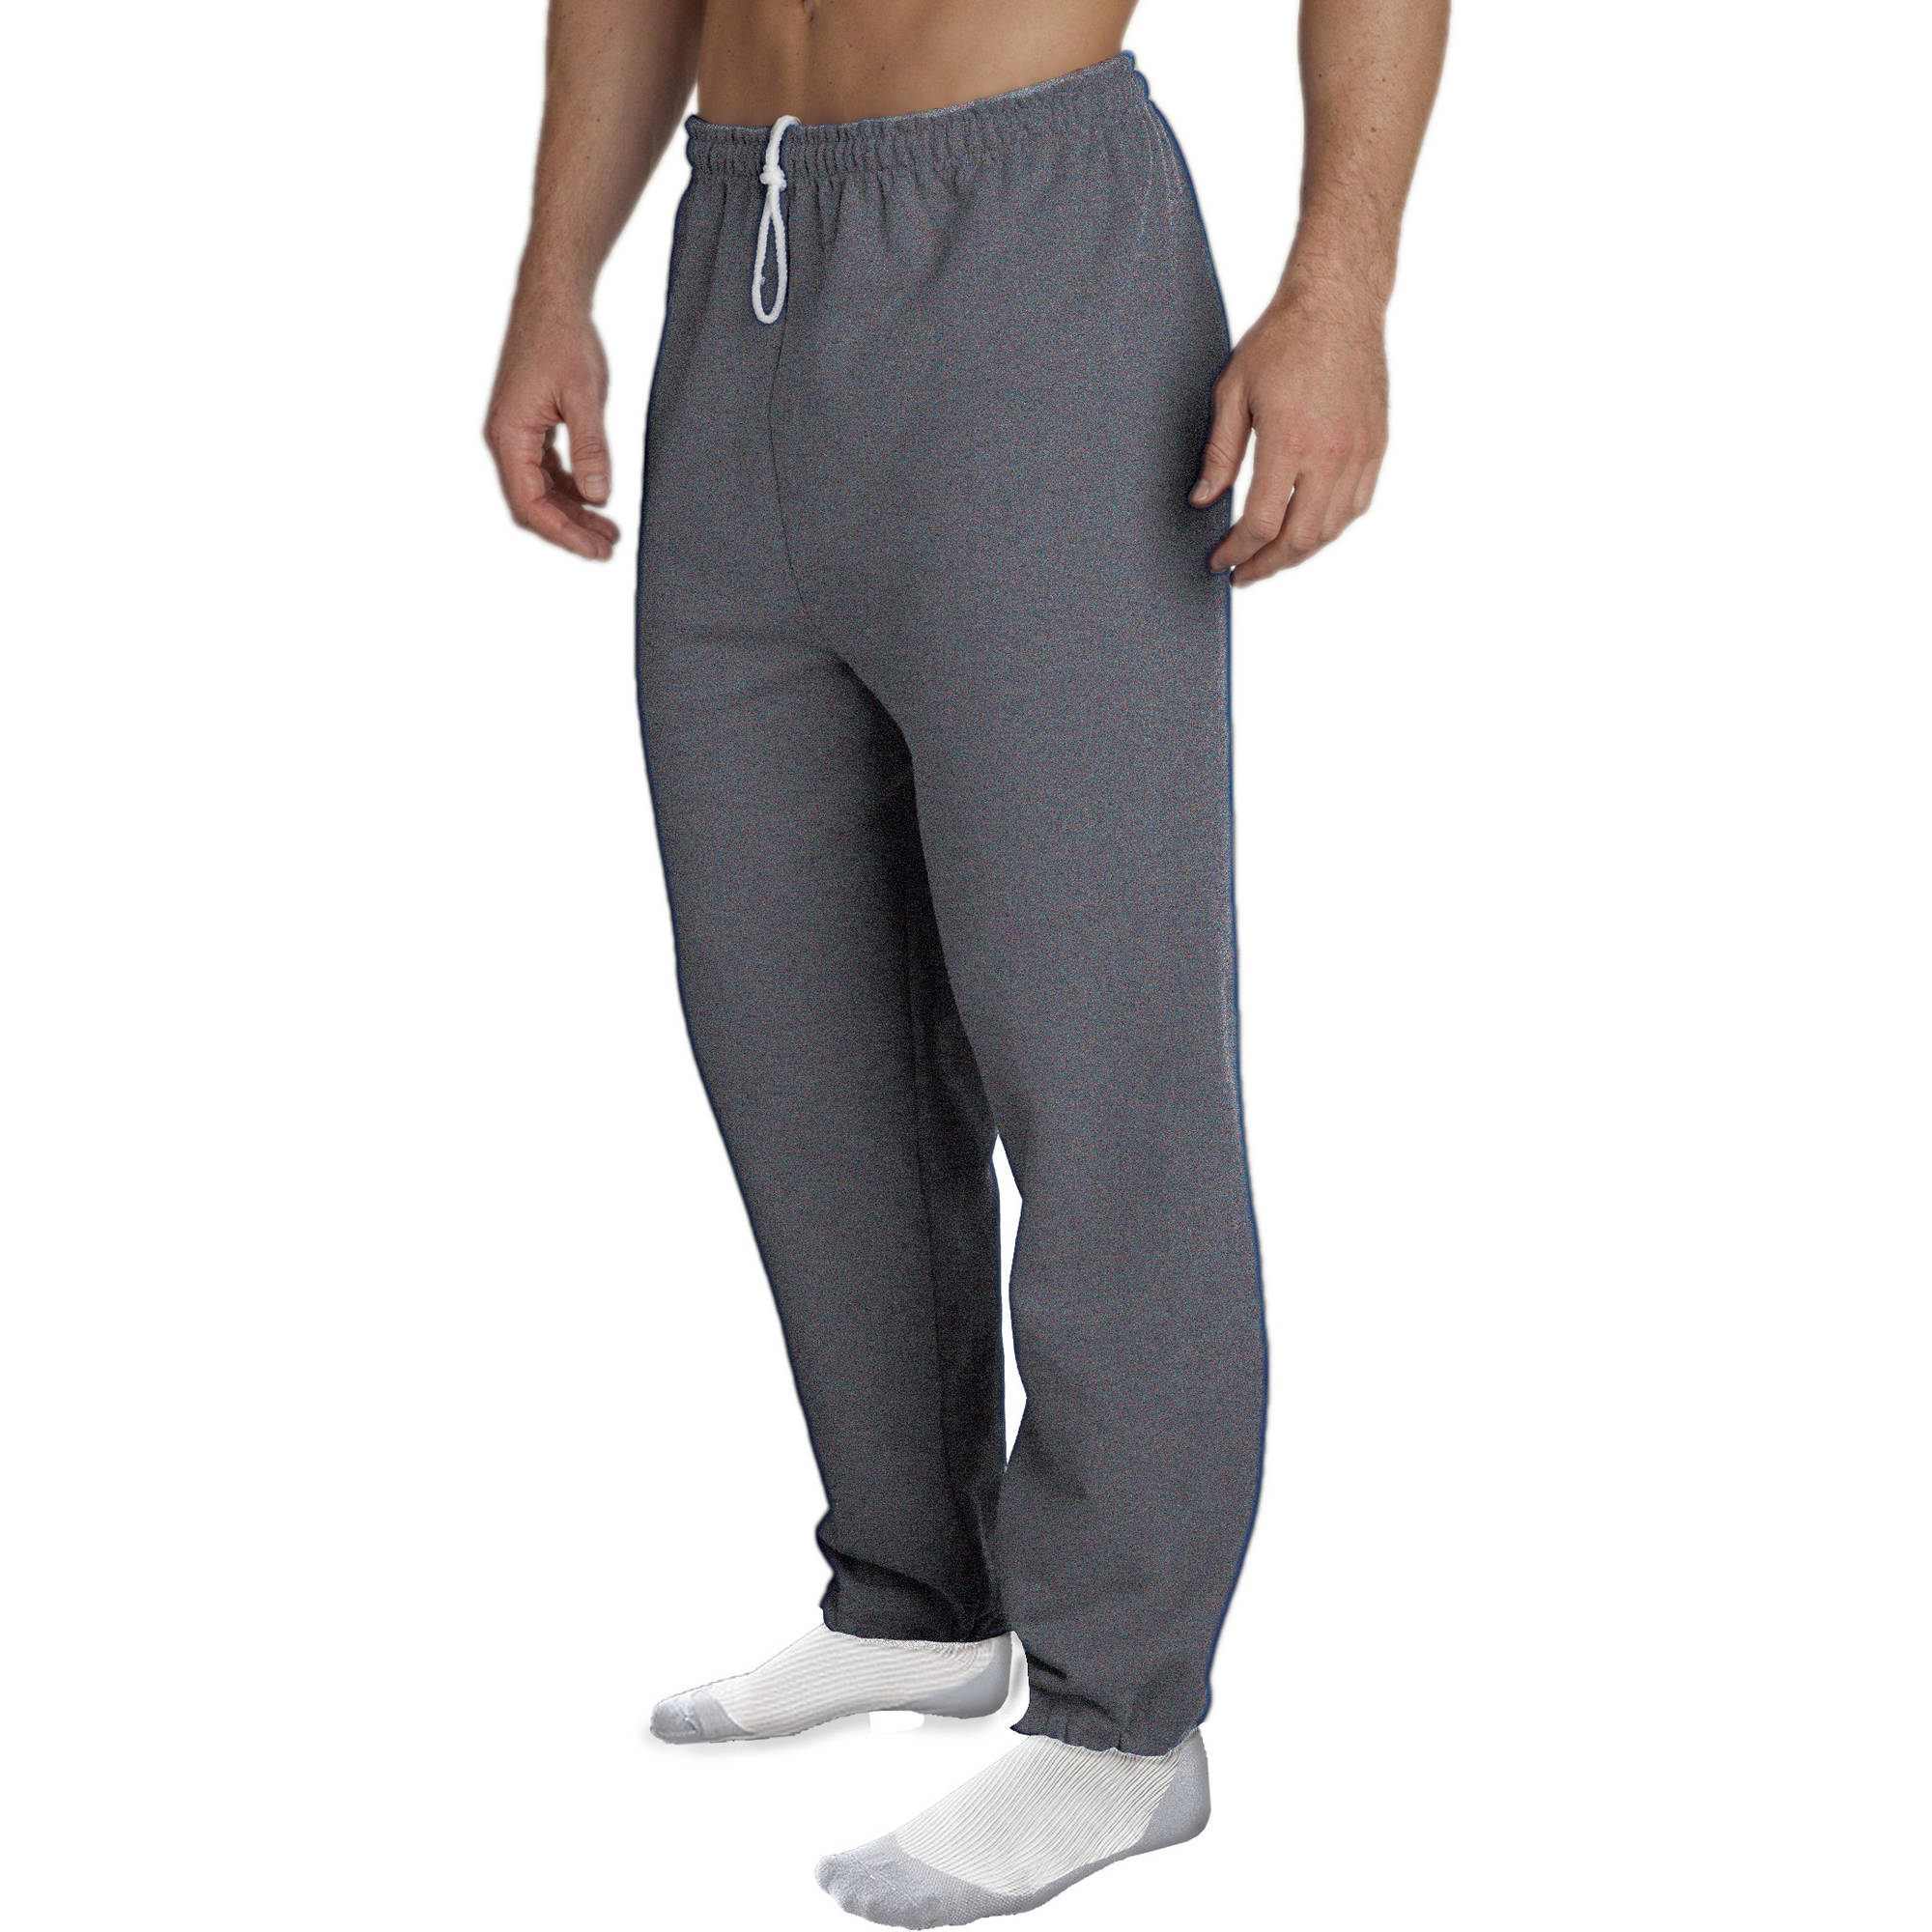 Thick gray sweats plus black tights bend 10